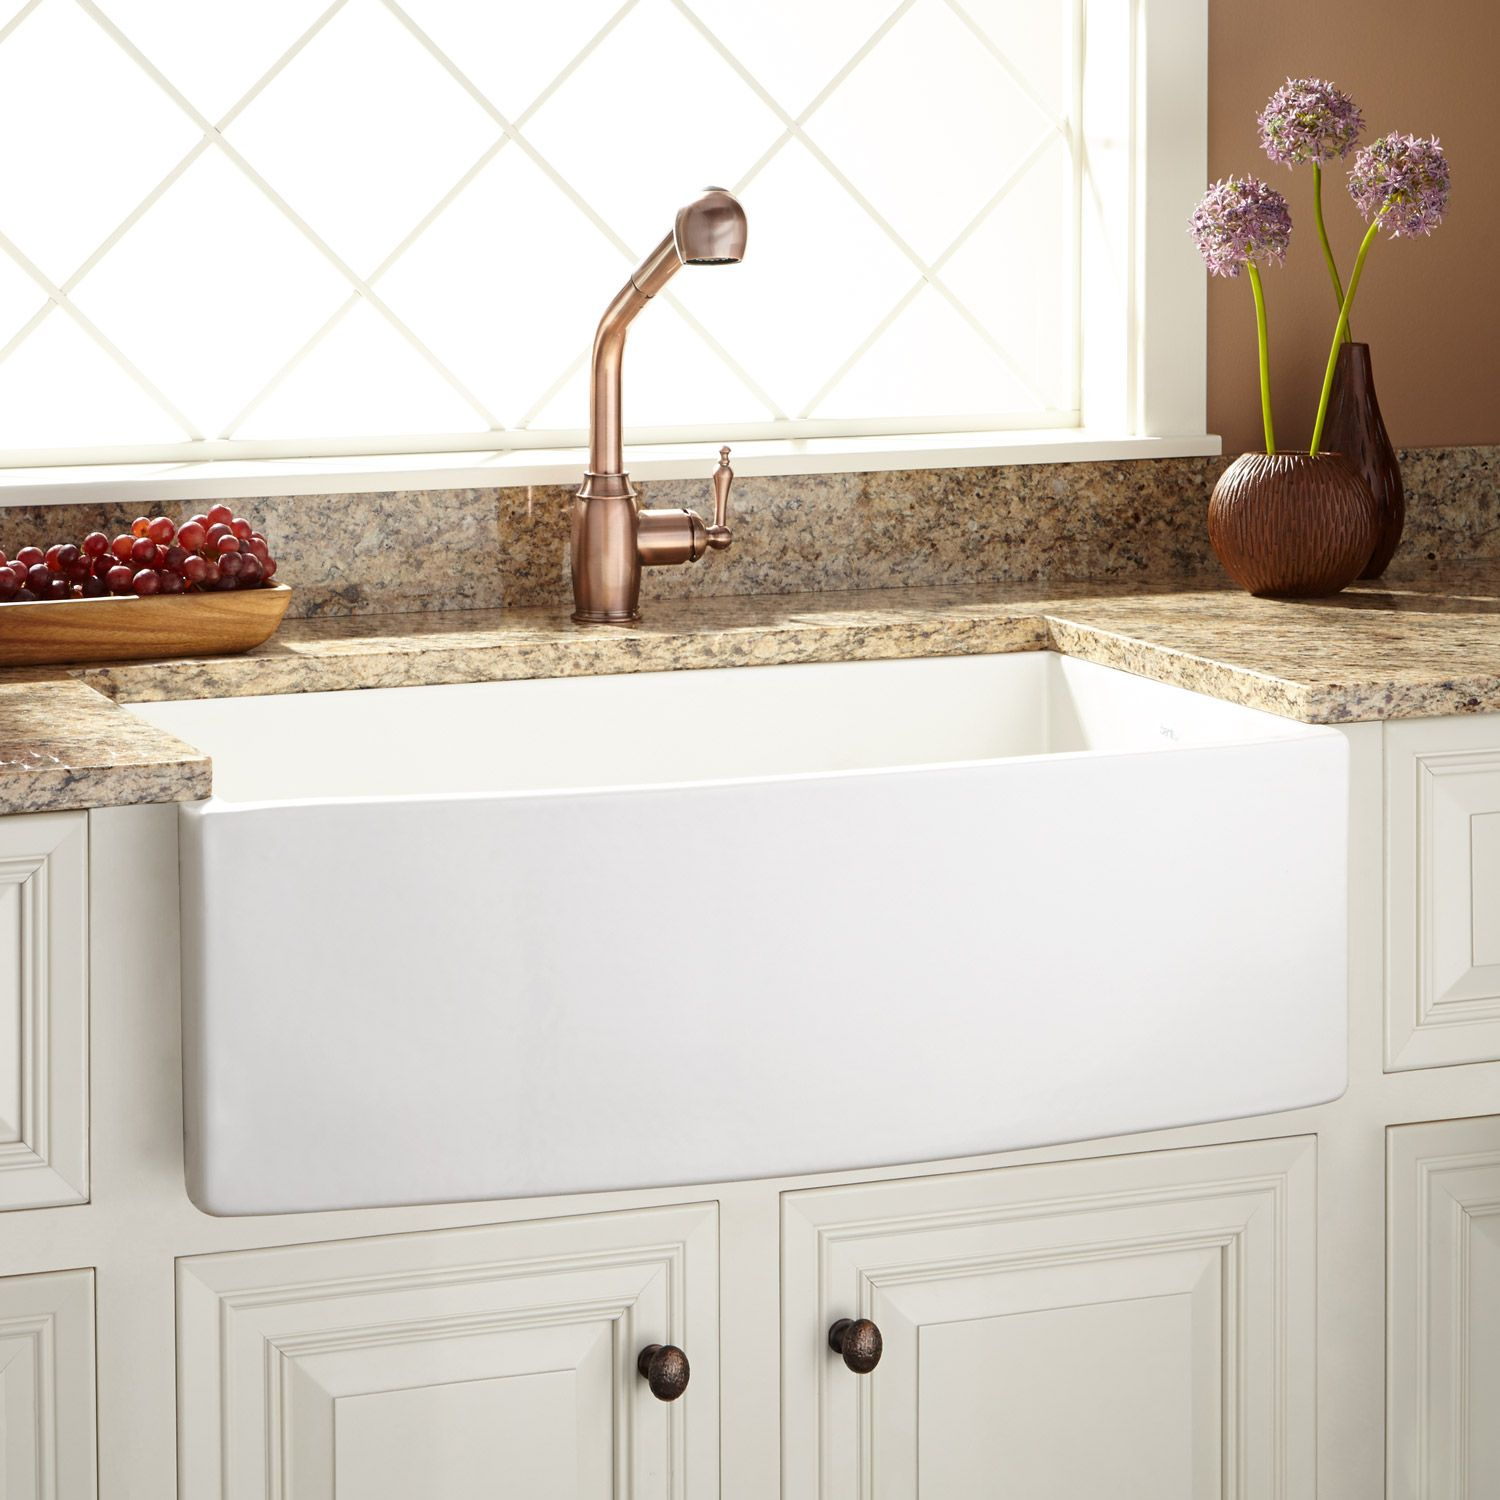 Image result for countertop choices with white apron front